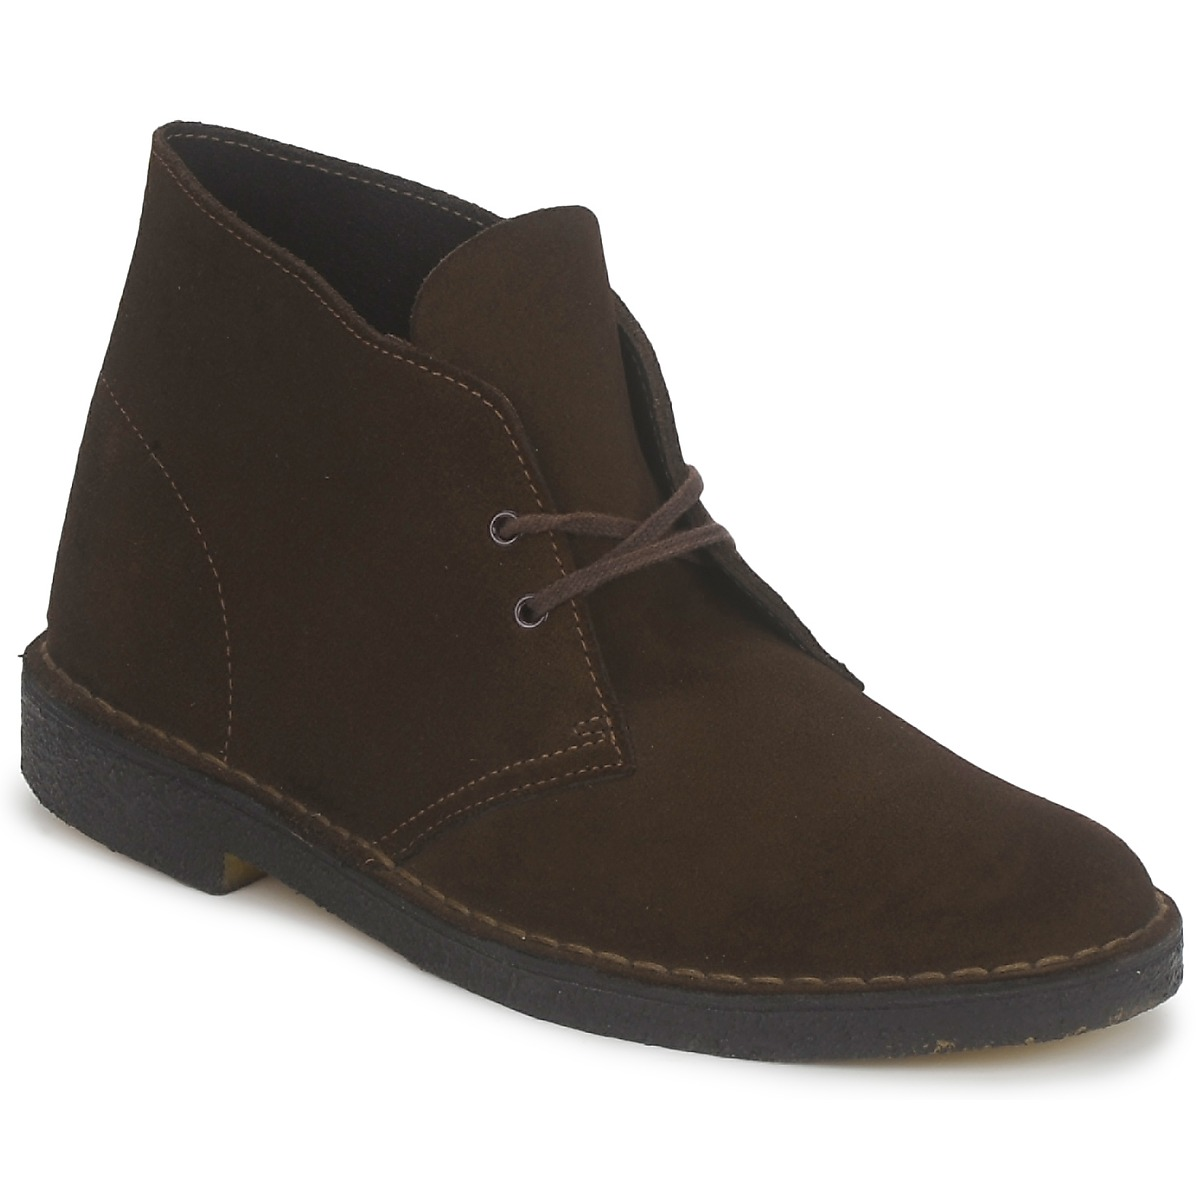 Clarks DESERT BOOT Brown